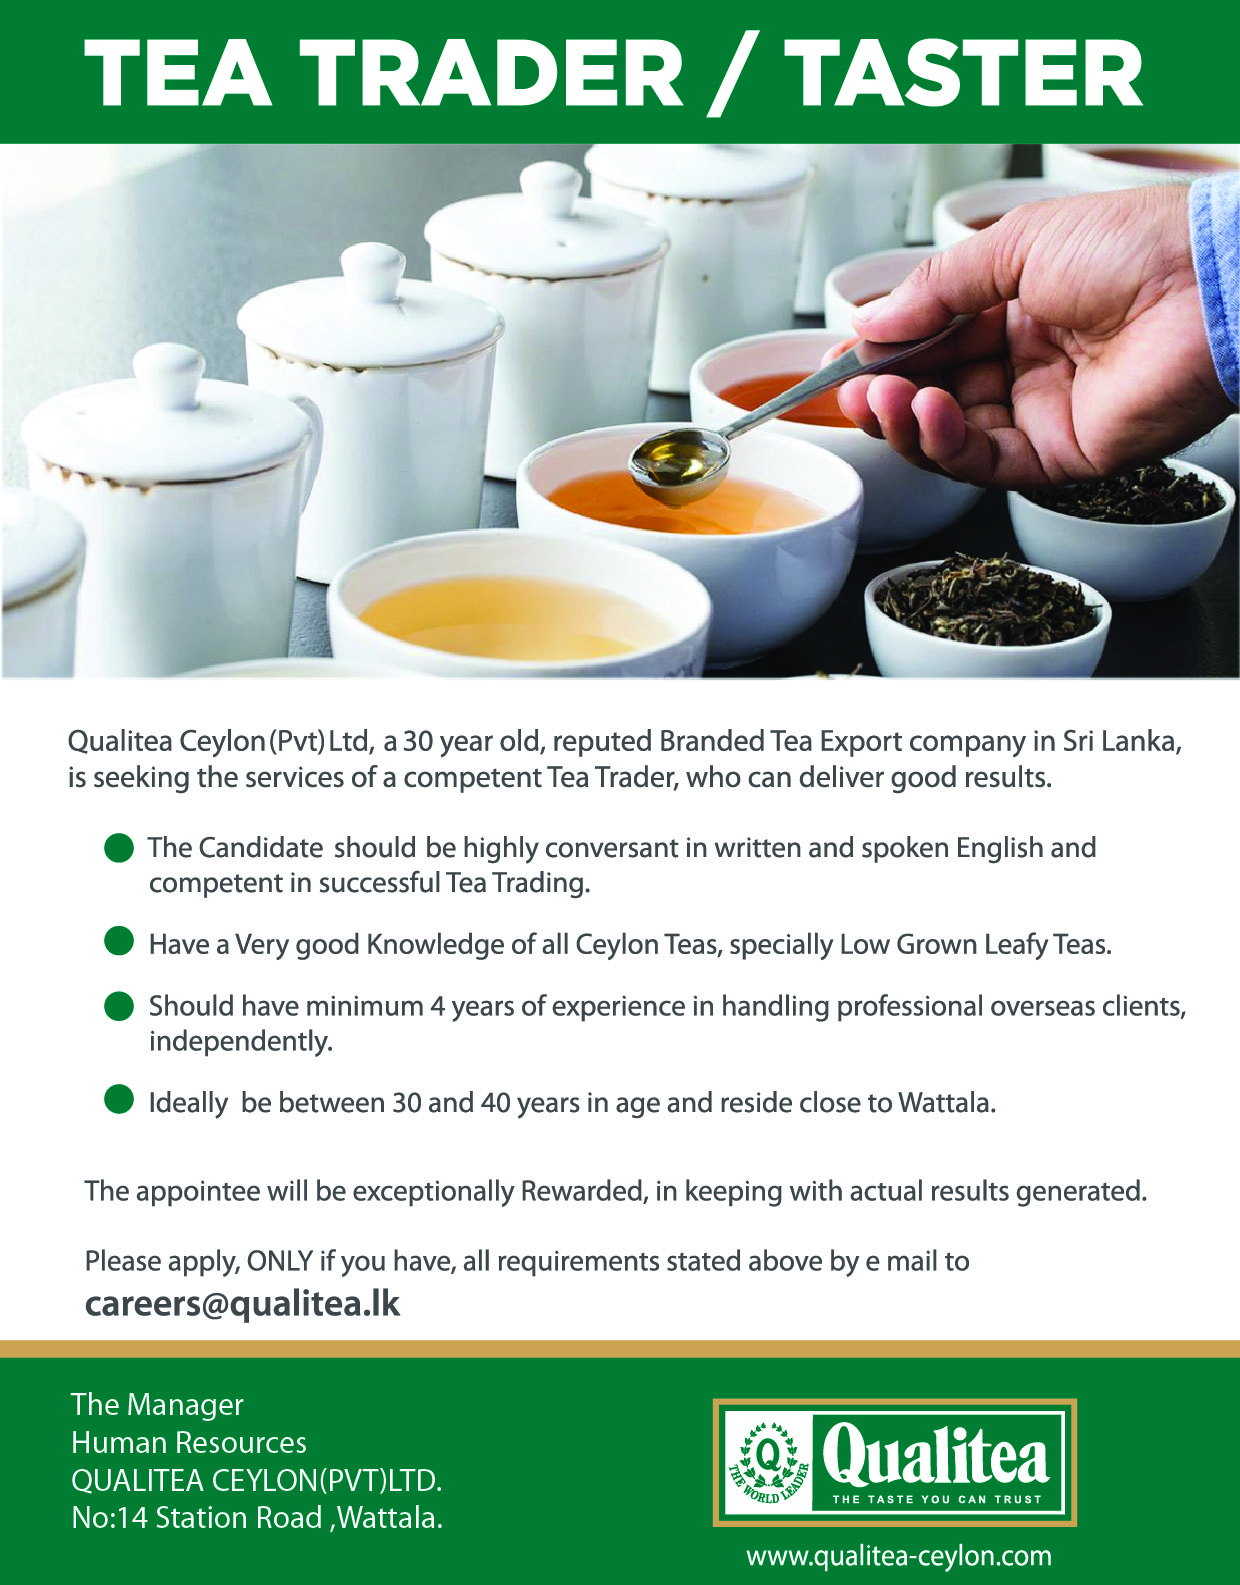 Top Jobs - Tea Trader_Taster - 31.08.2020